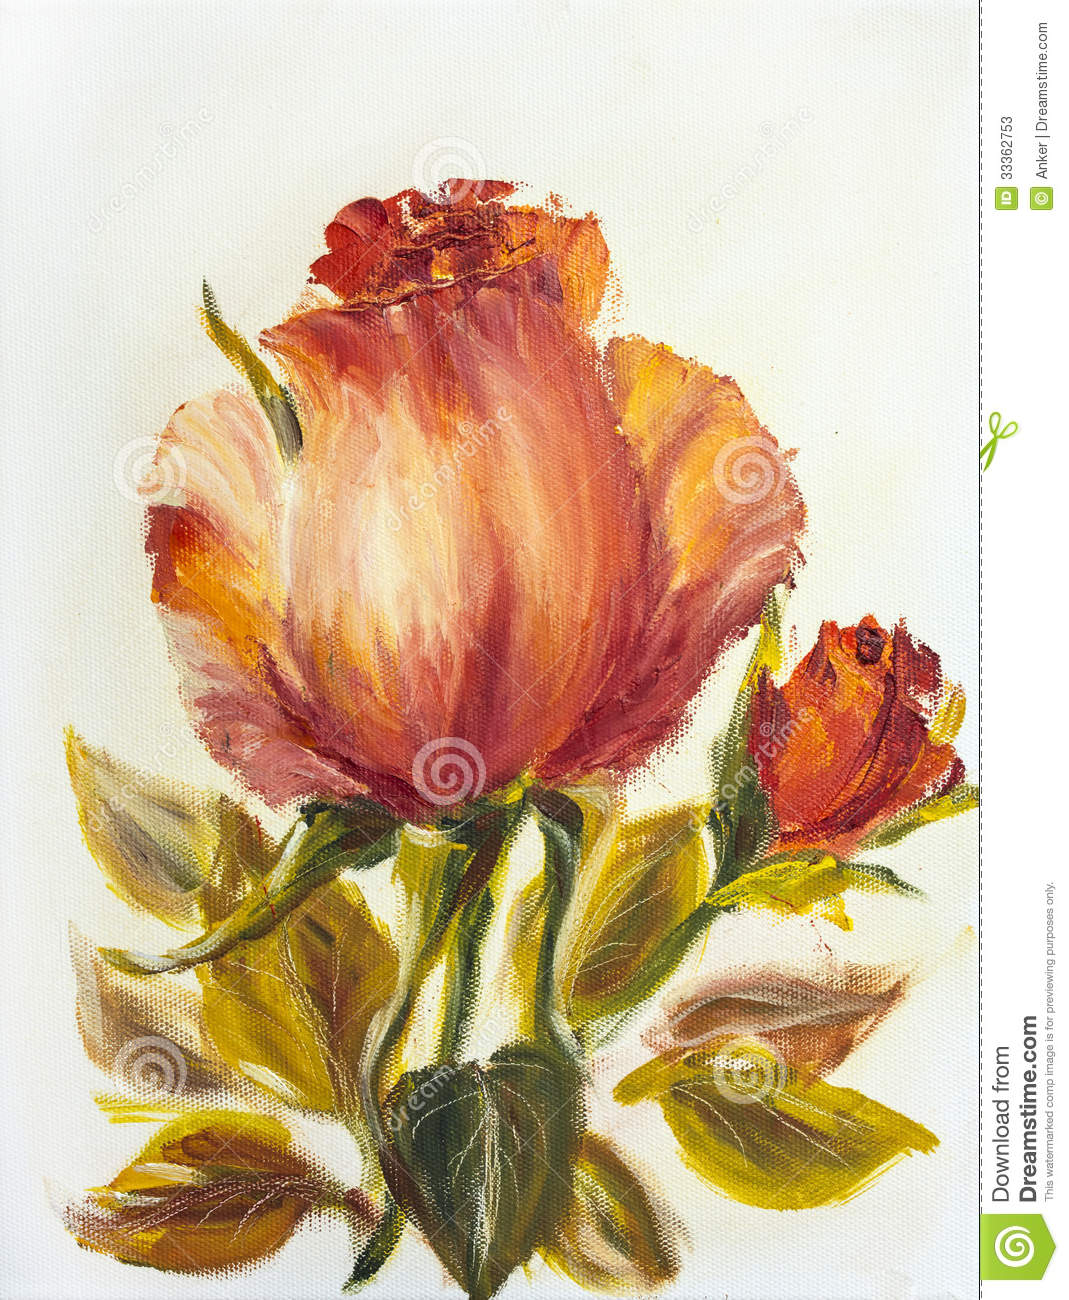 Beautiful rose oil painting stock illustration image for Beautiful canvas painting